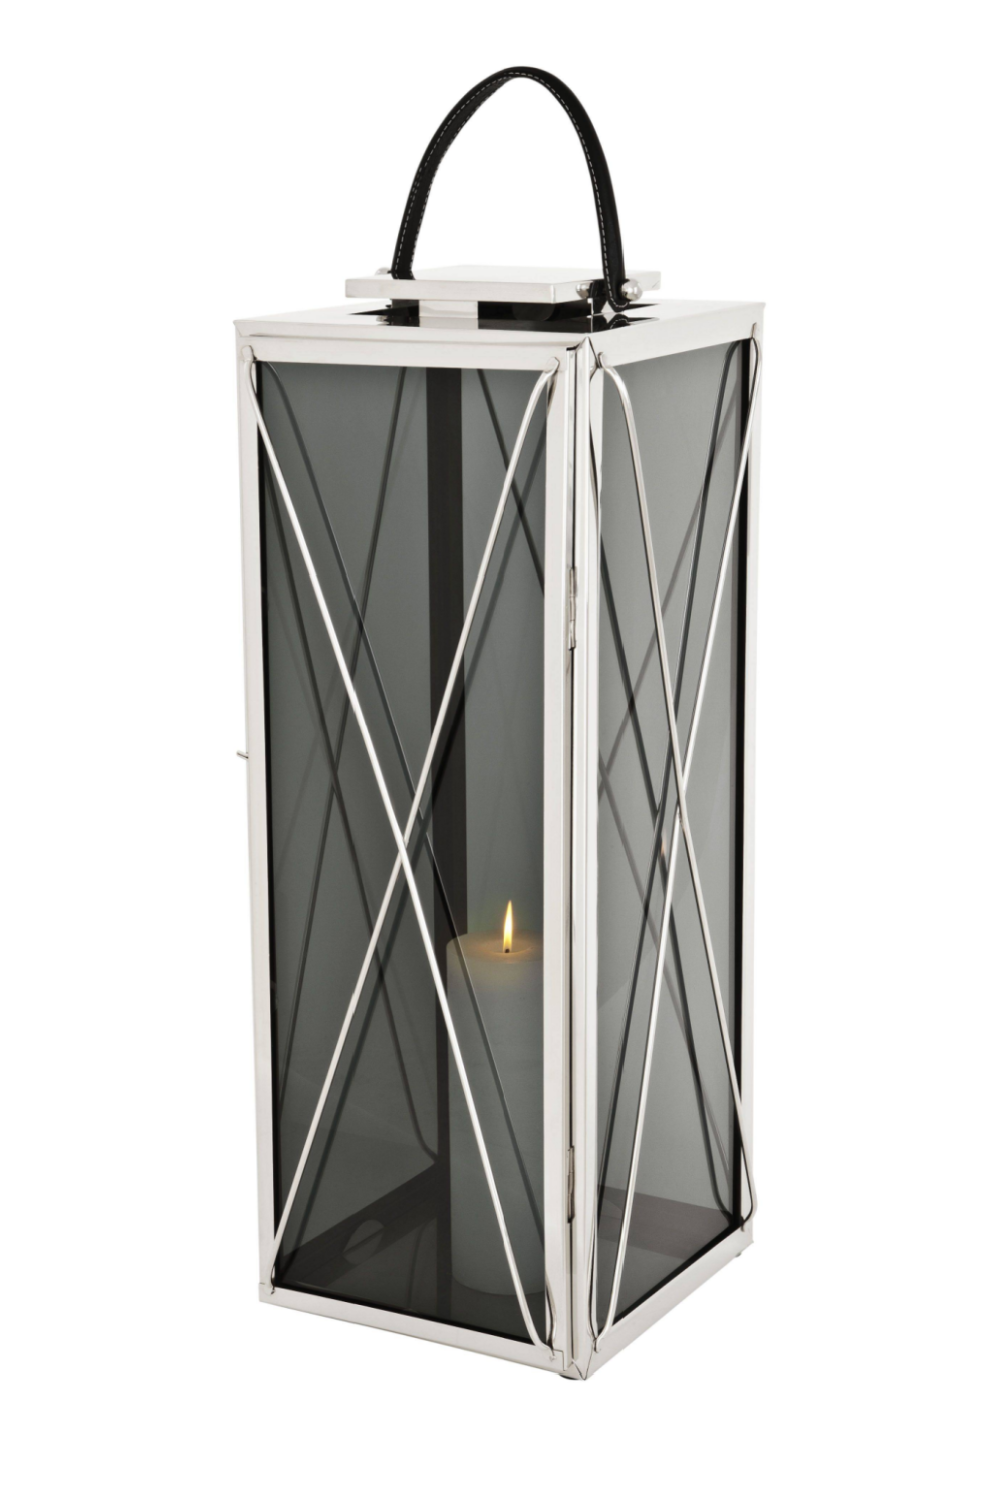 Black Lantern - L | Eichholtz Ipanema | OROA Modern & Luxury Furniture